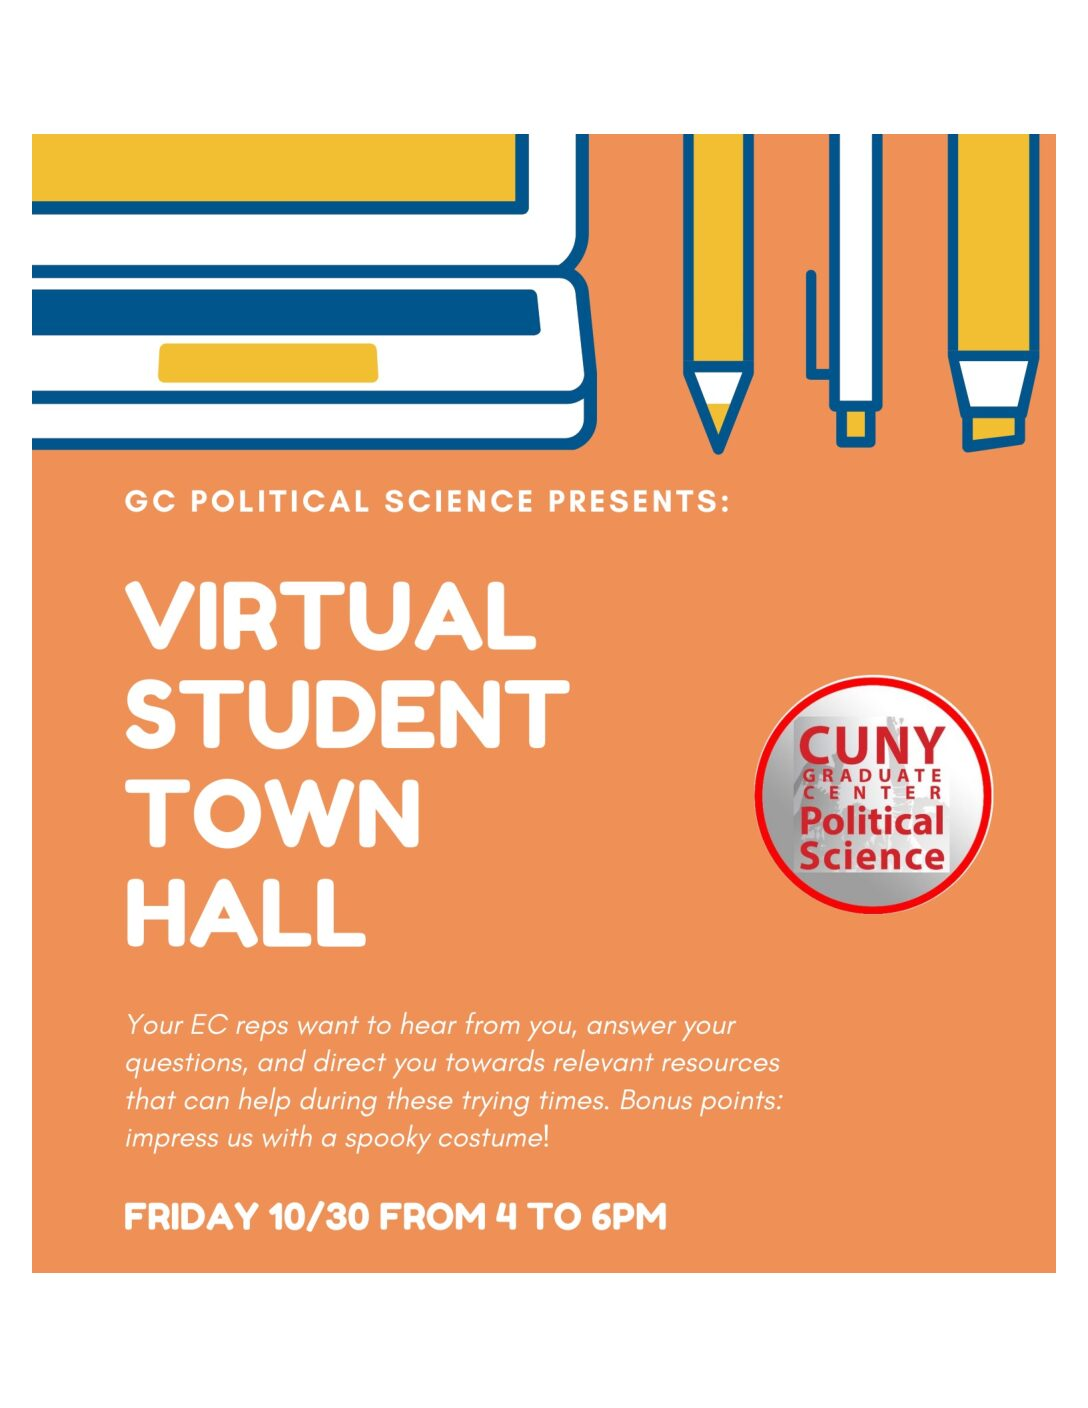 Virtual Student Town Hall: Friday, October 30, 4-6pm